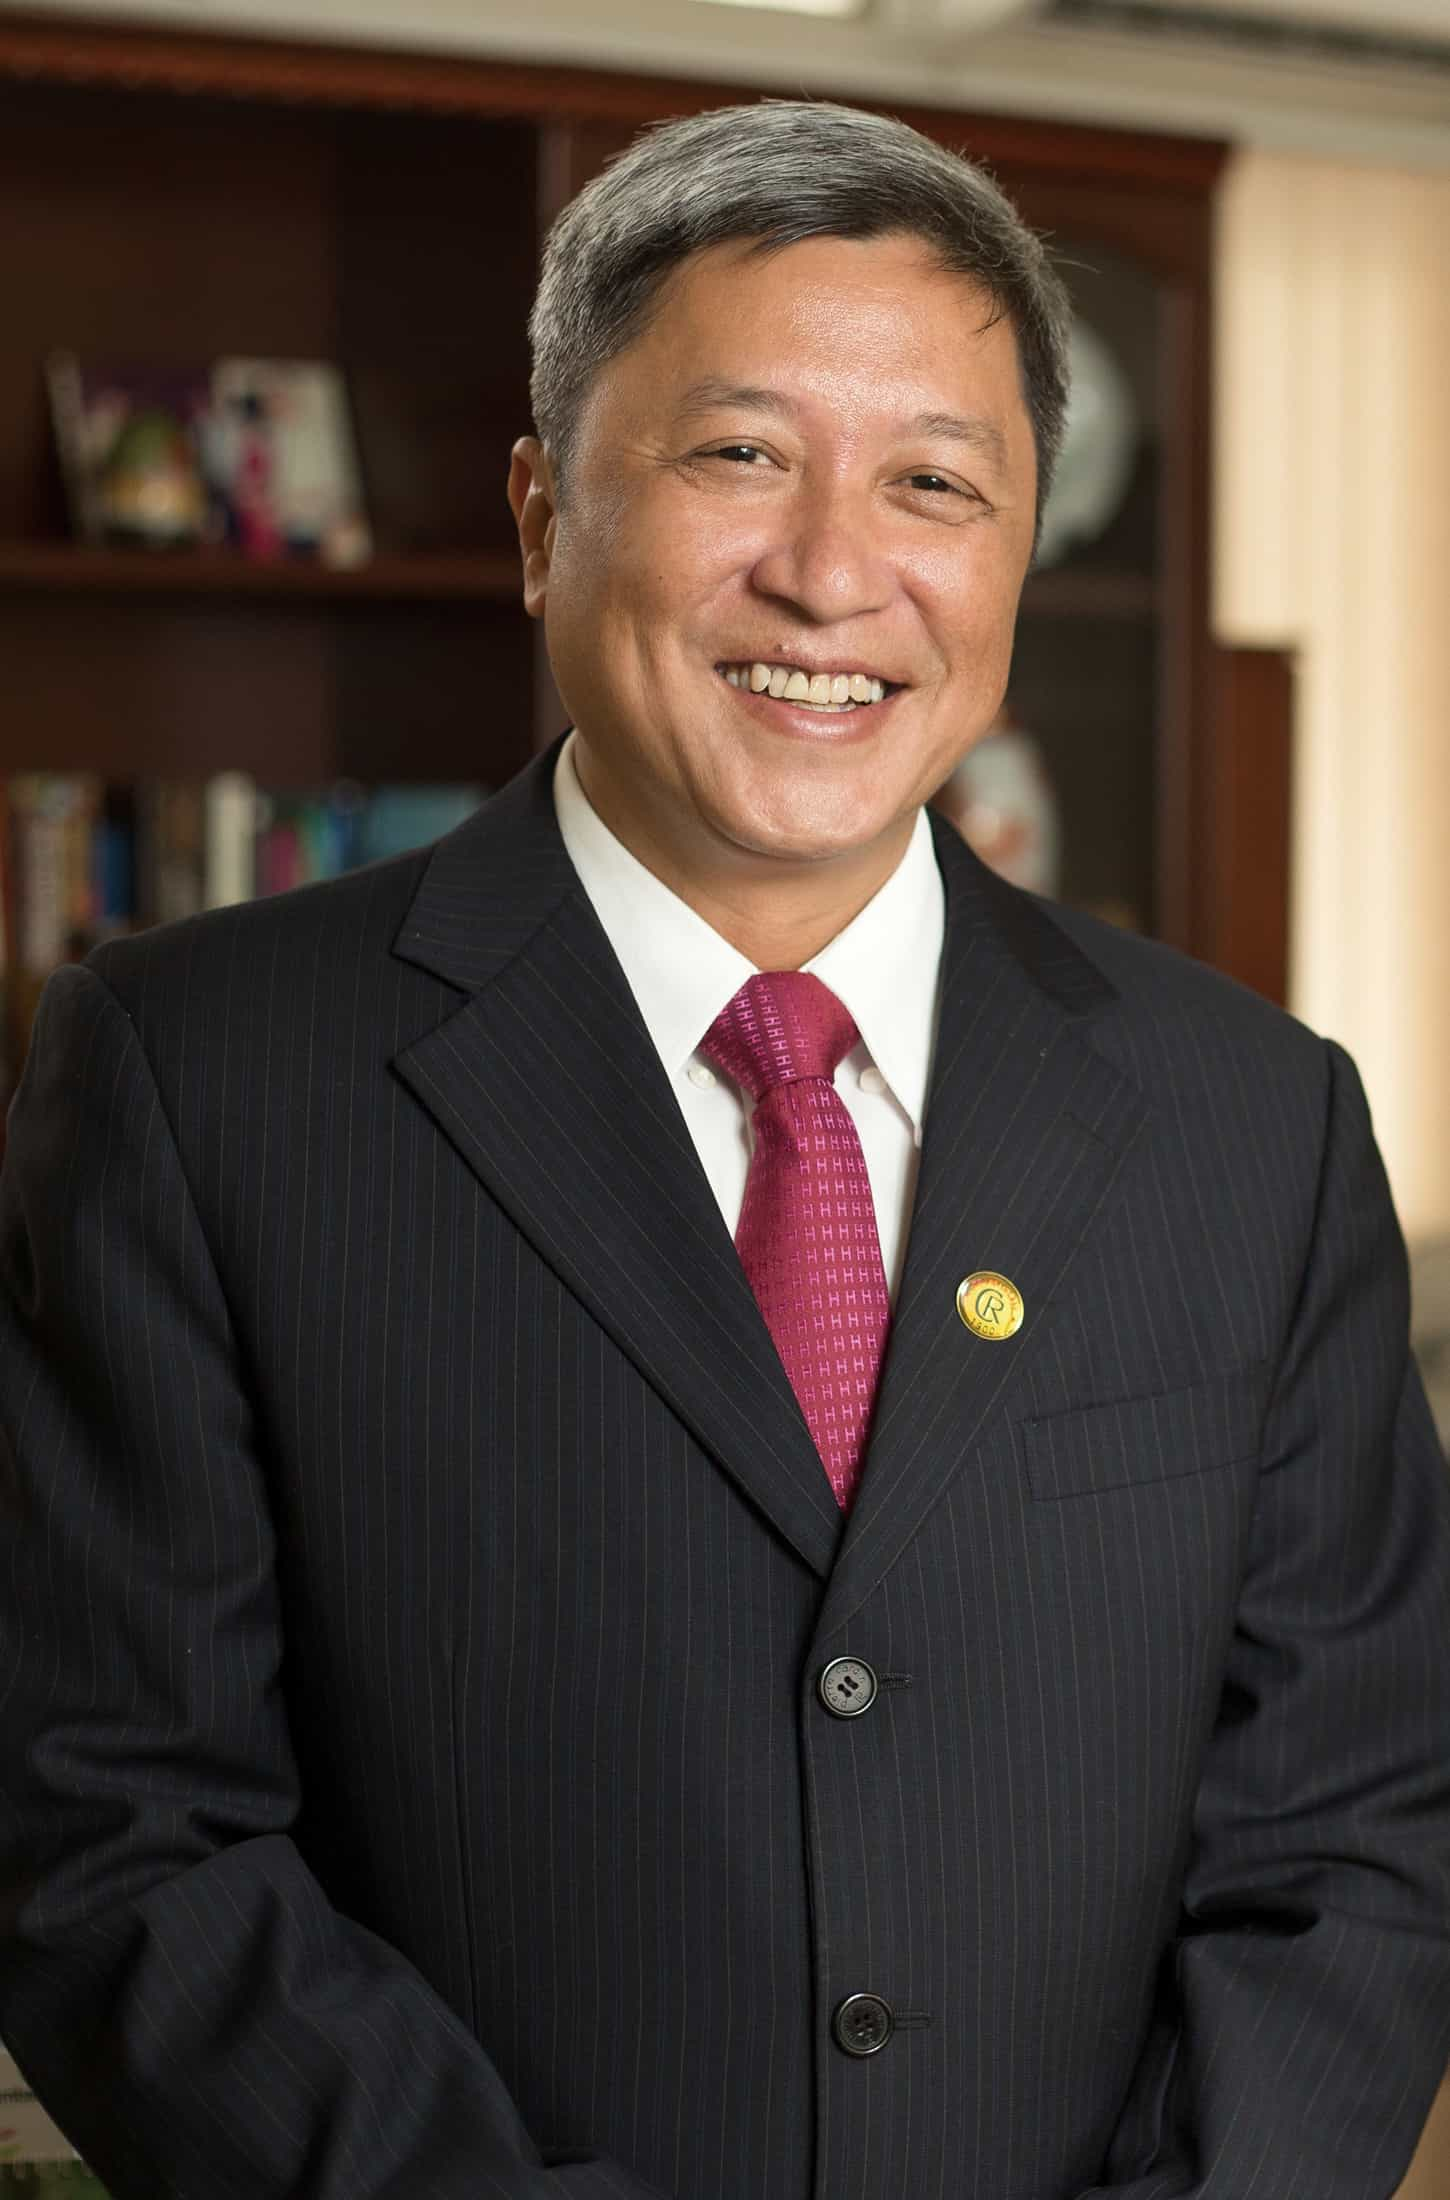 <small>Director, Cho Ray Hospital</small><br/> Assoc. Prof. Nguyen Truong Son M.D., Ph.D.